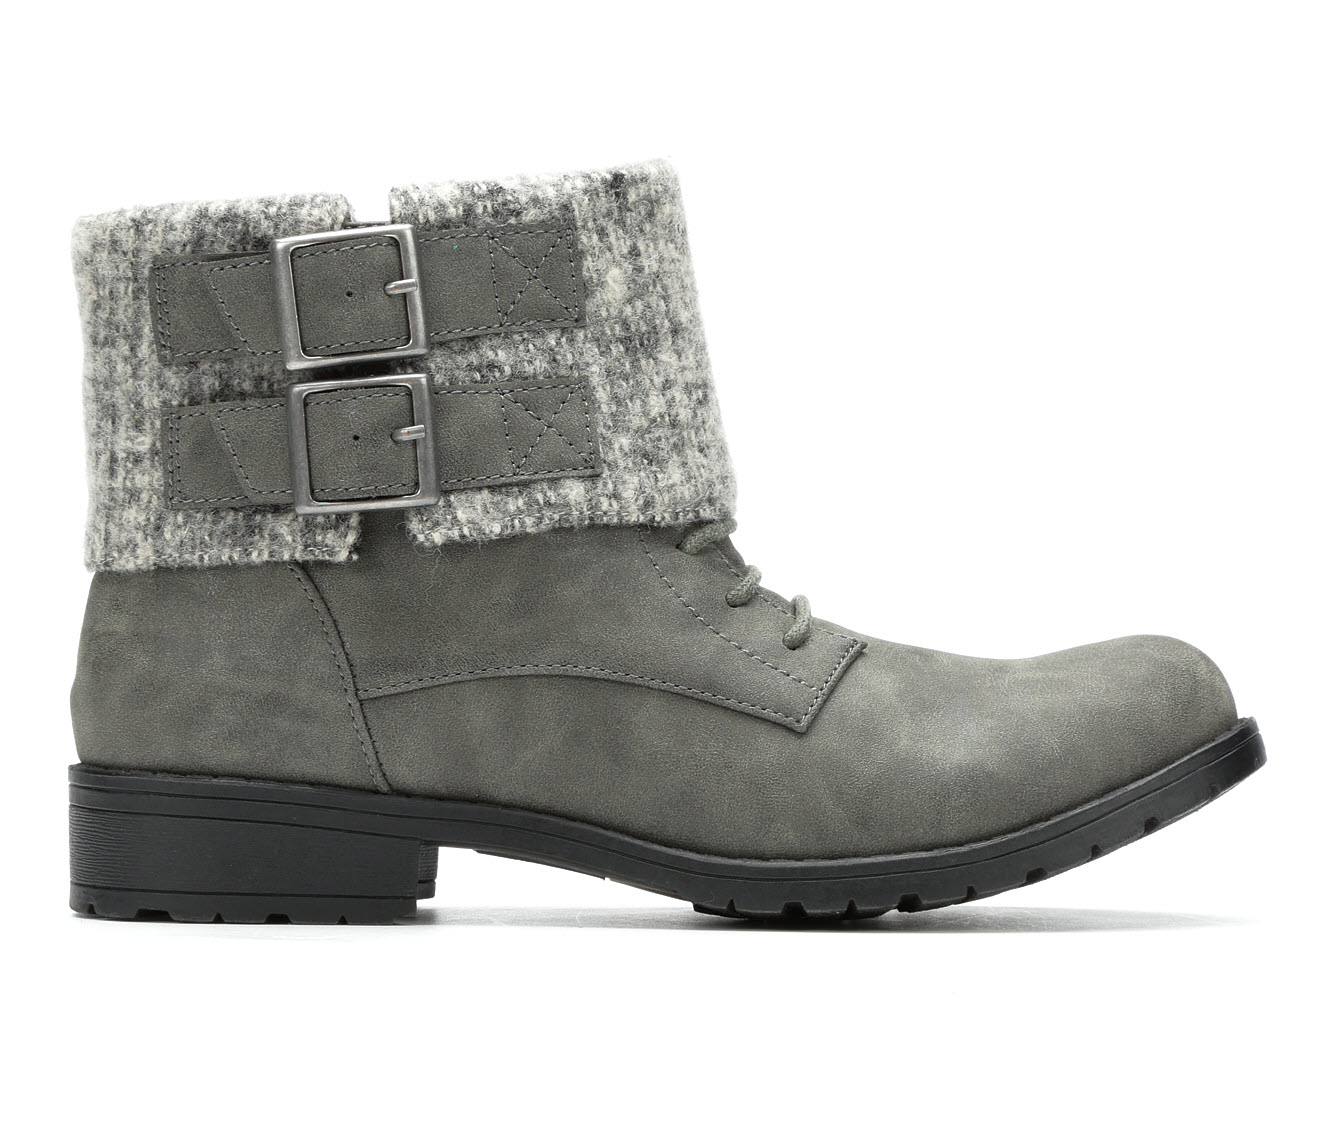 Rocket Dog Babster Women's Boot (Gray Faux Leather)